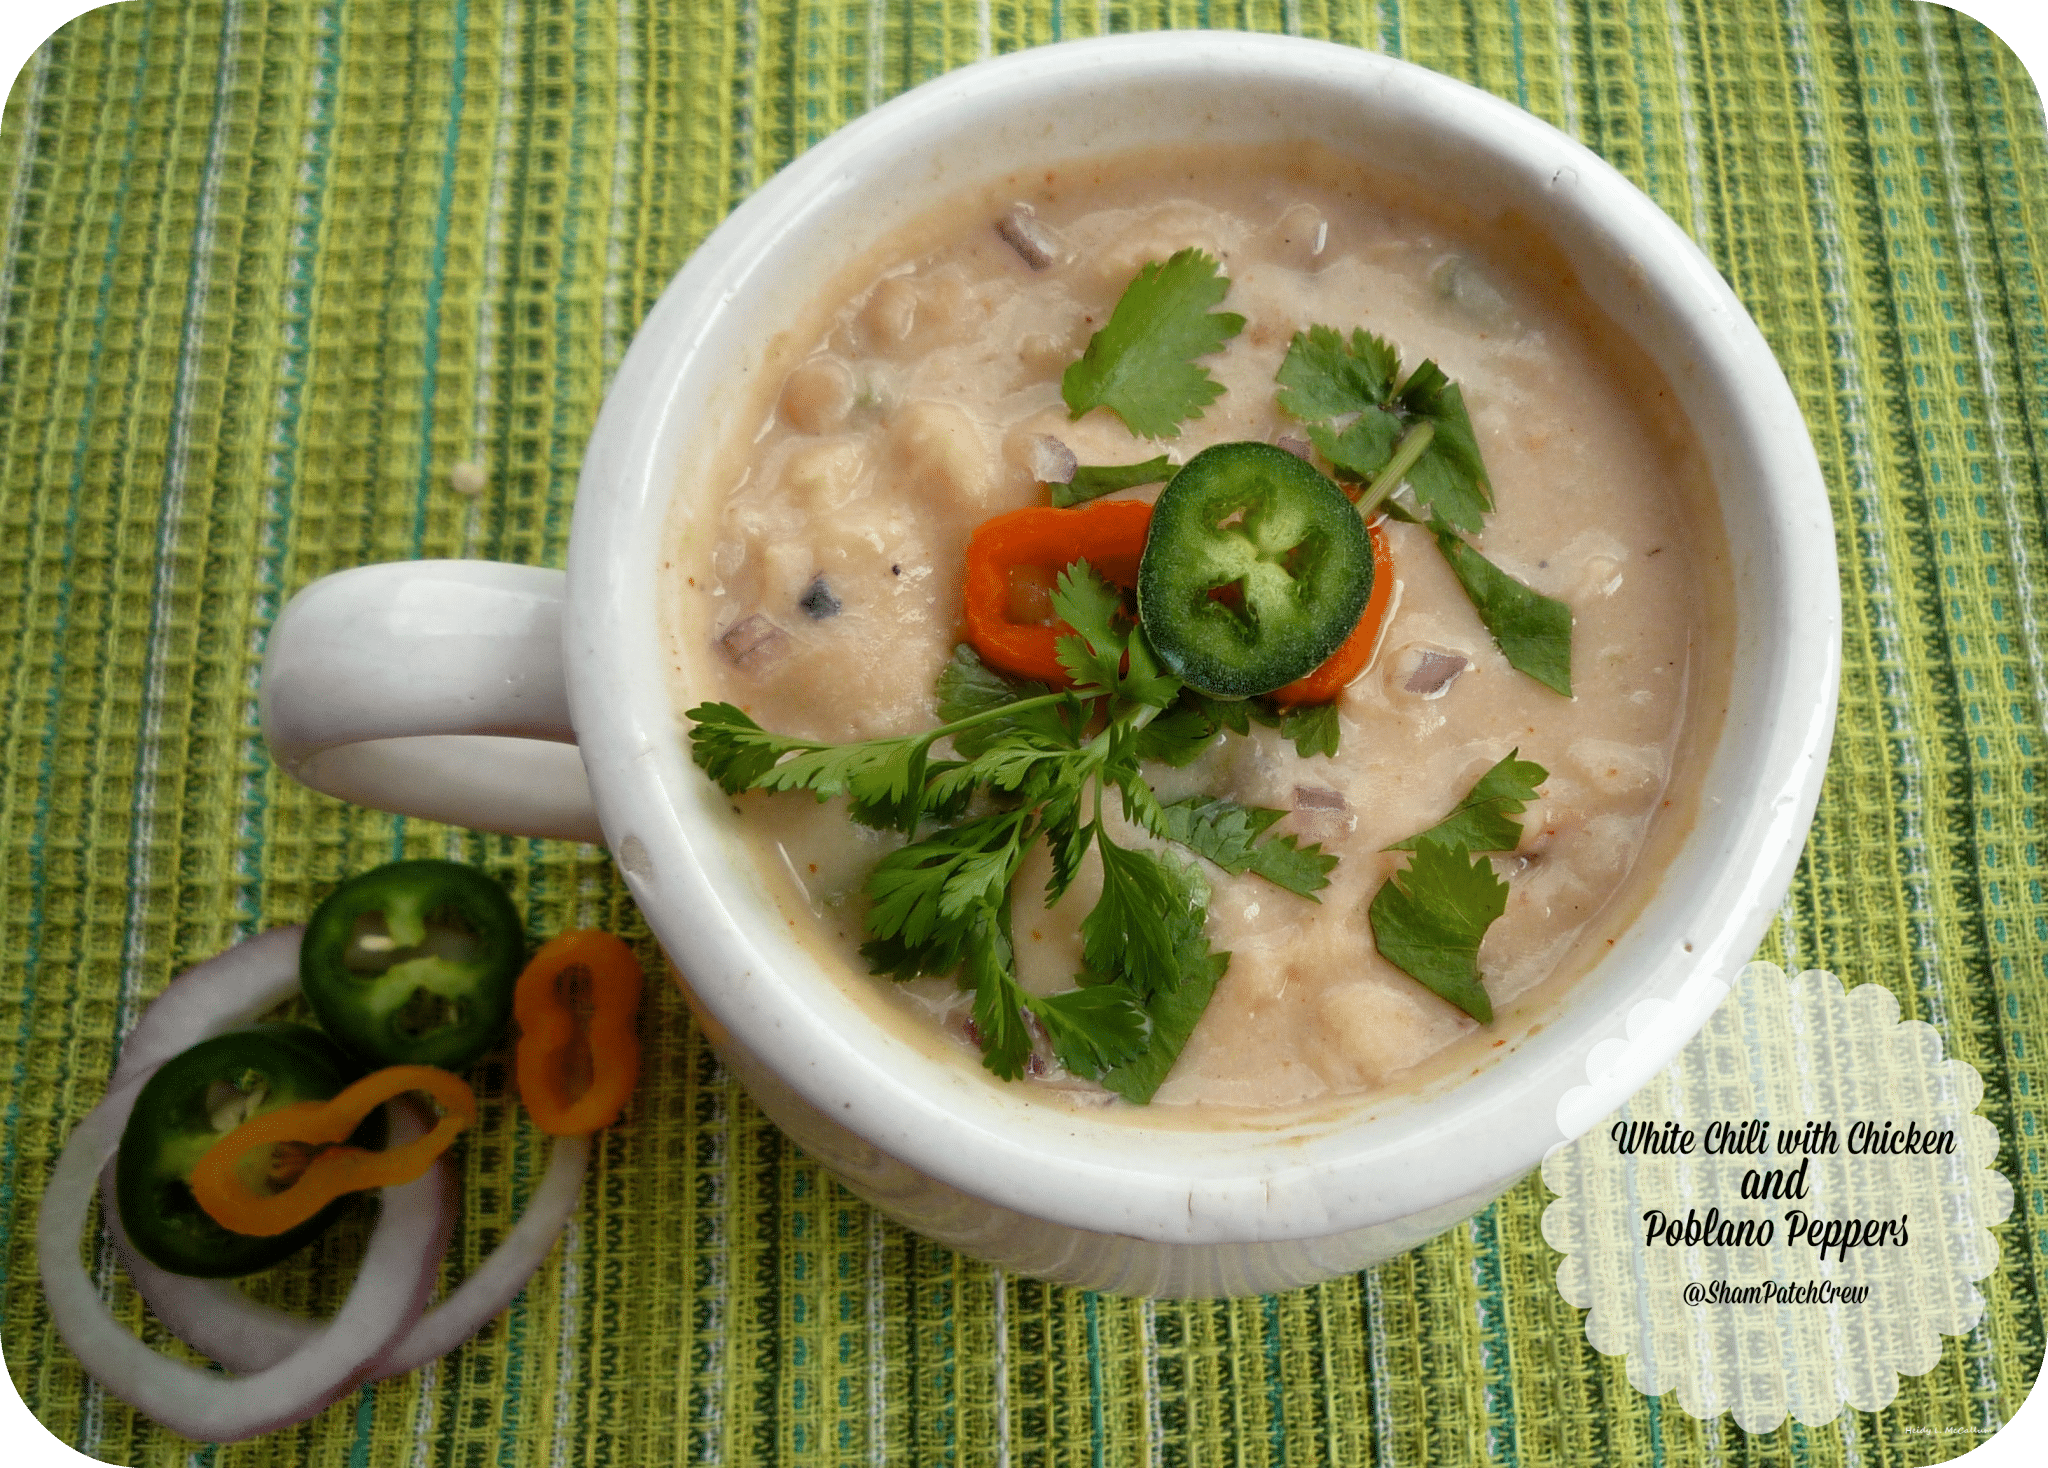 White Chili with Chicken and #Poblano Peppers The Chili Trilogy #chili #blackbeans #northernbeans #redbeans